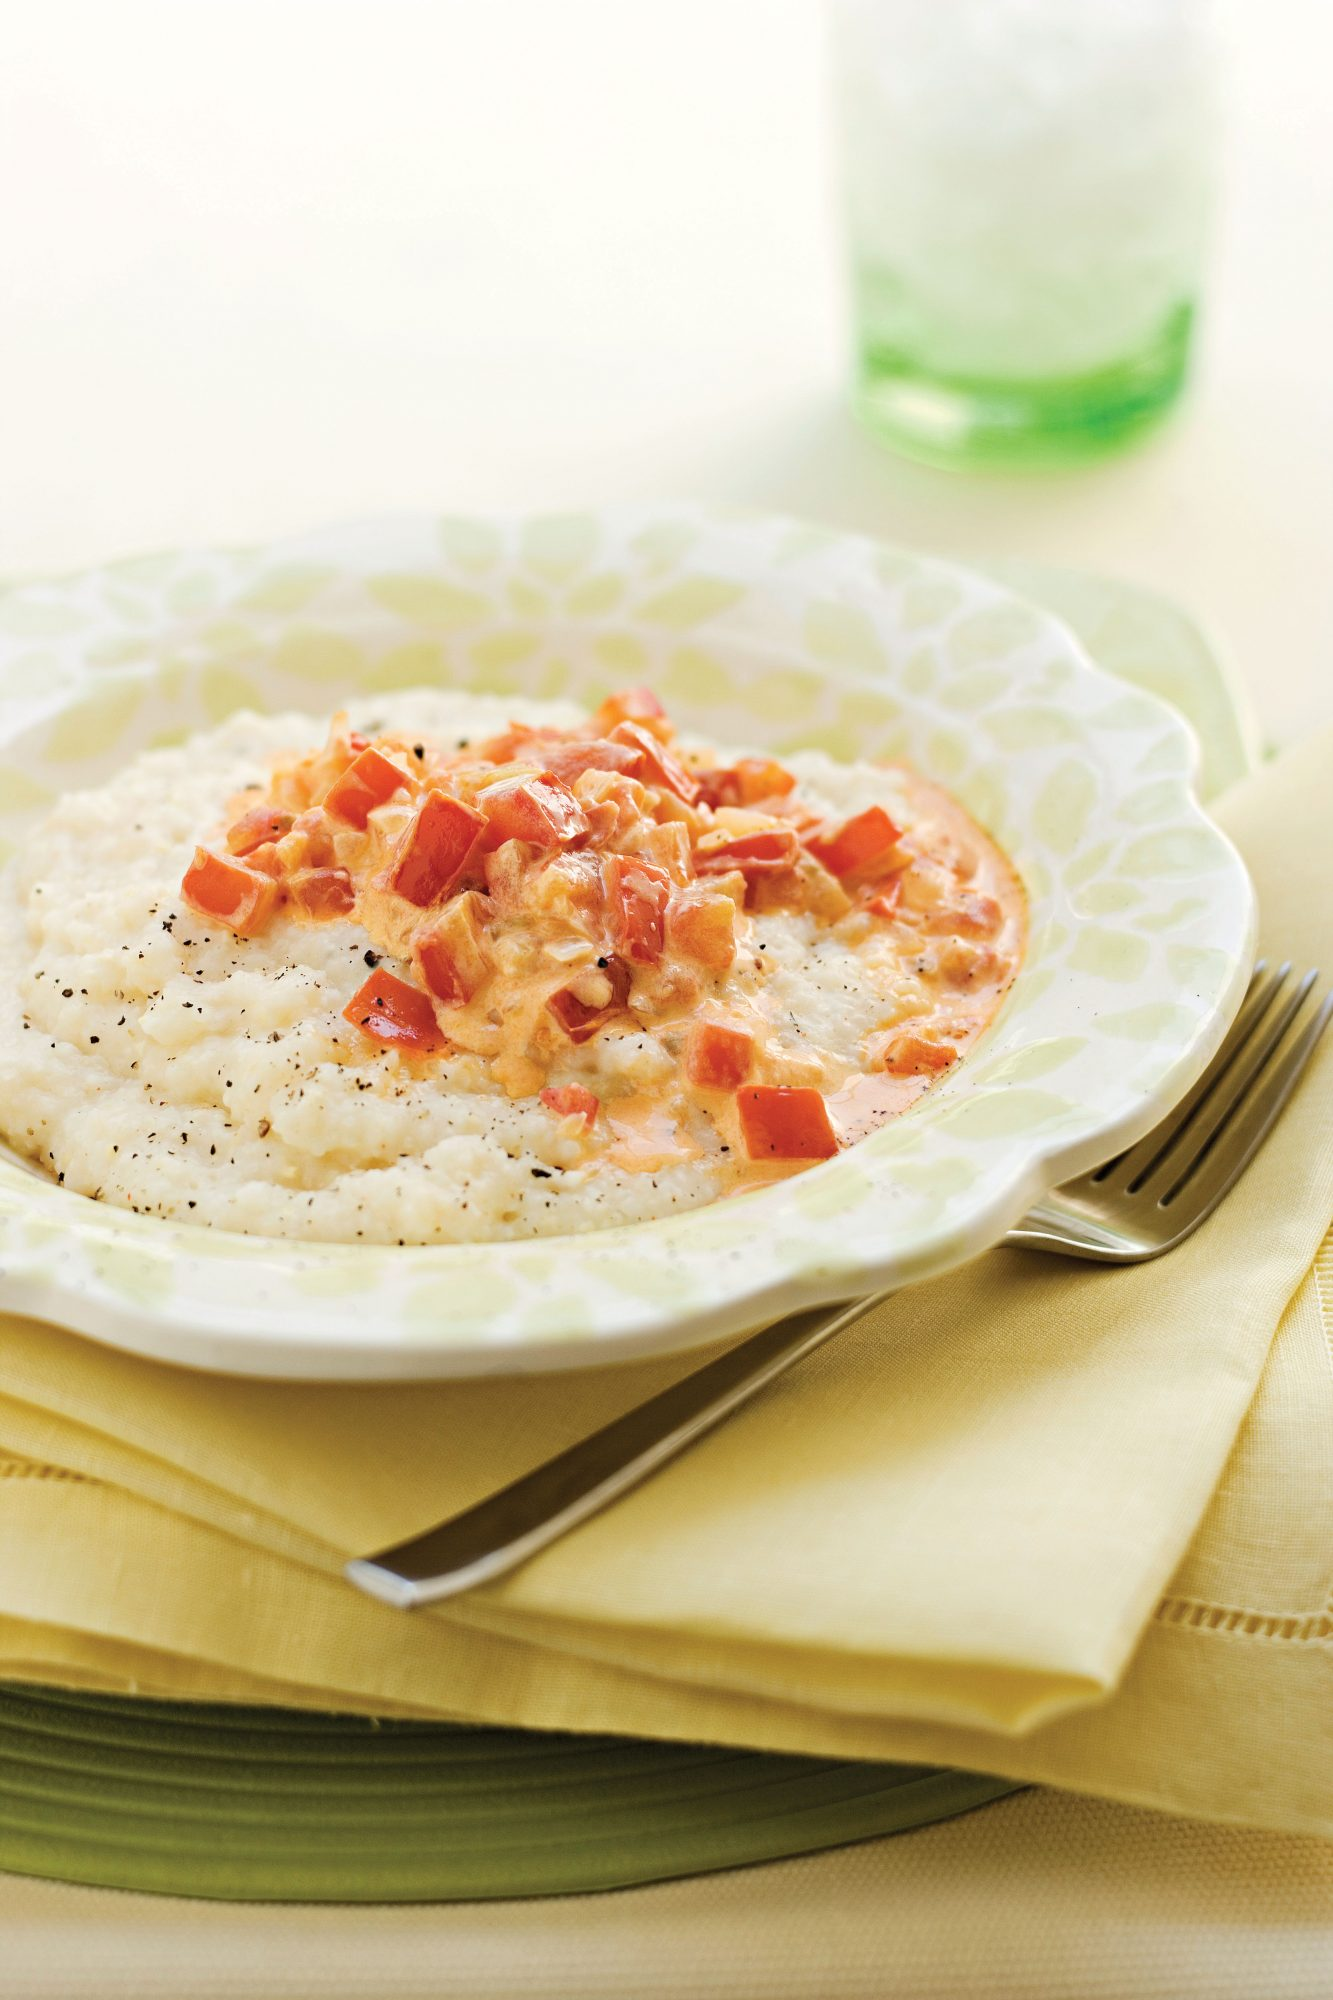 Grits and Tomato Gravy Recipes